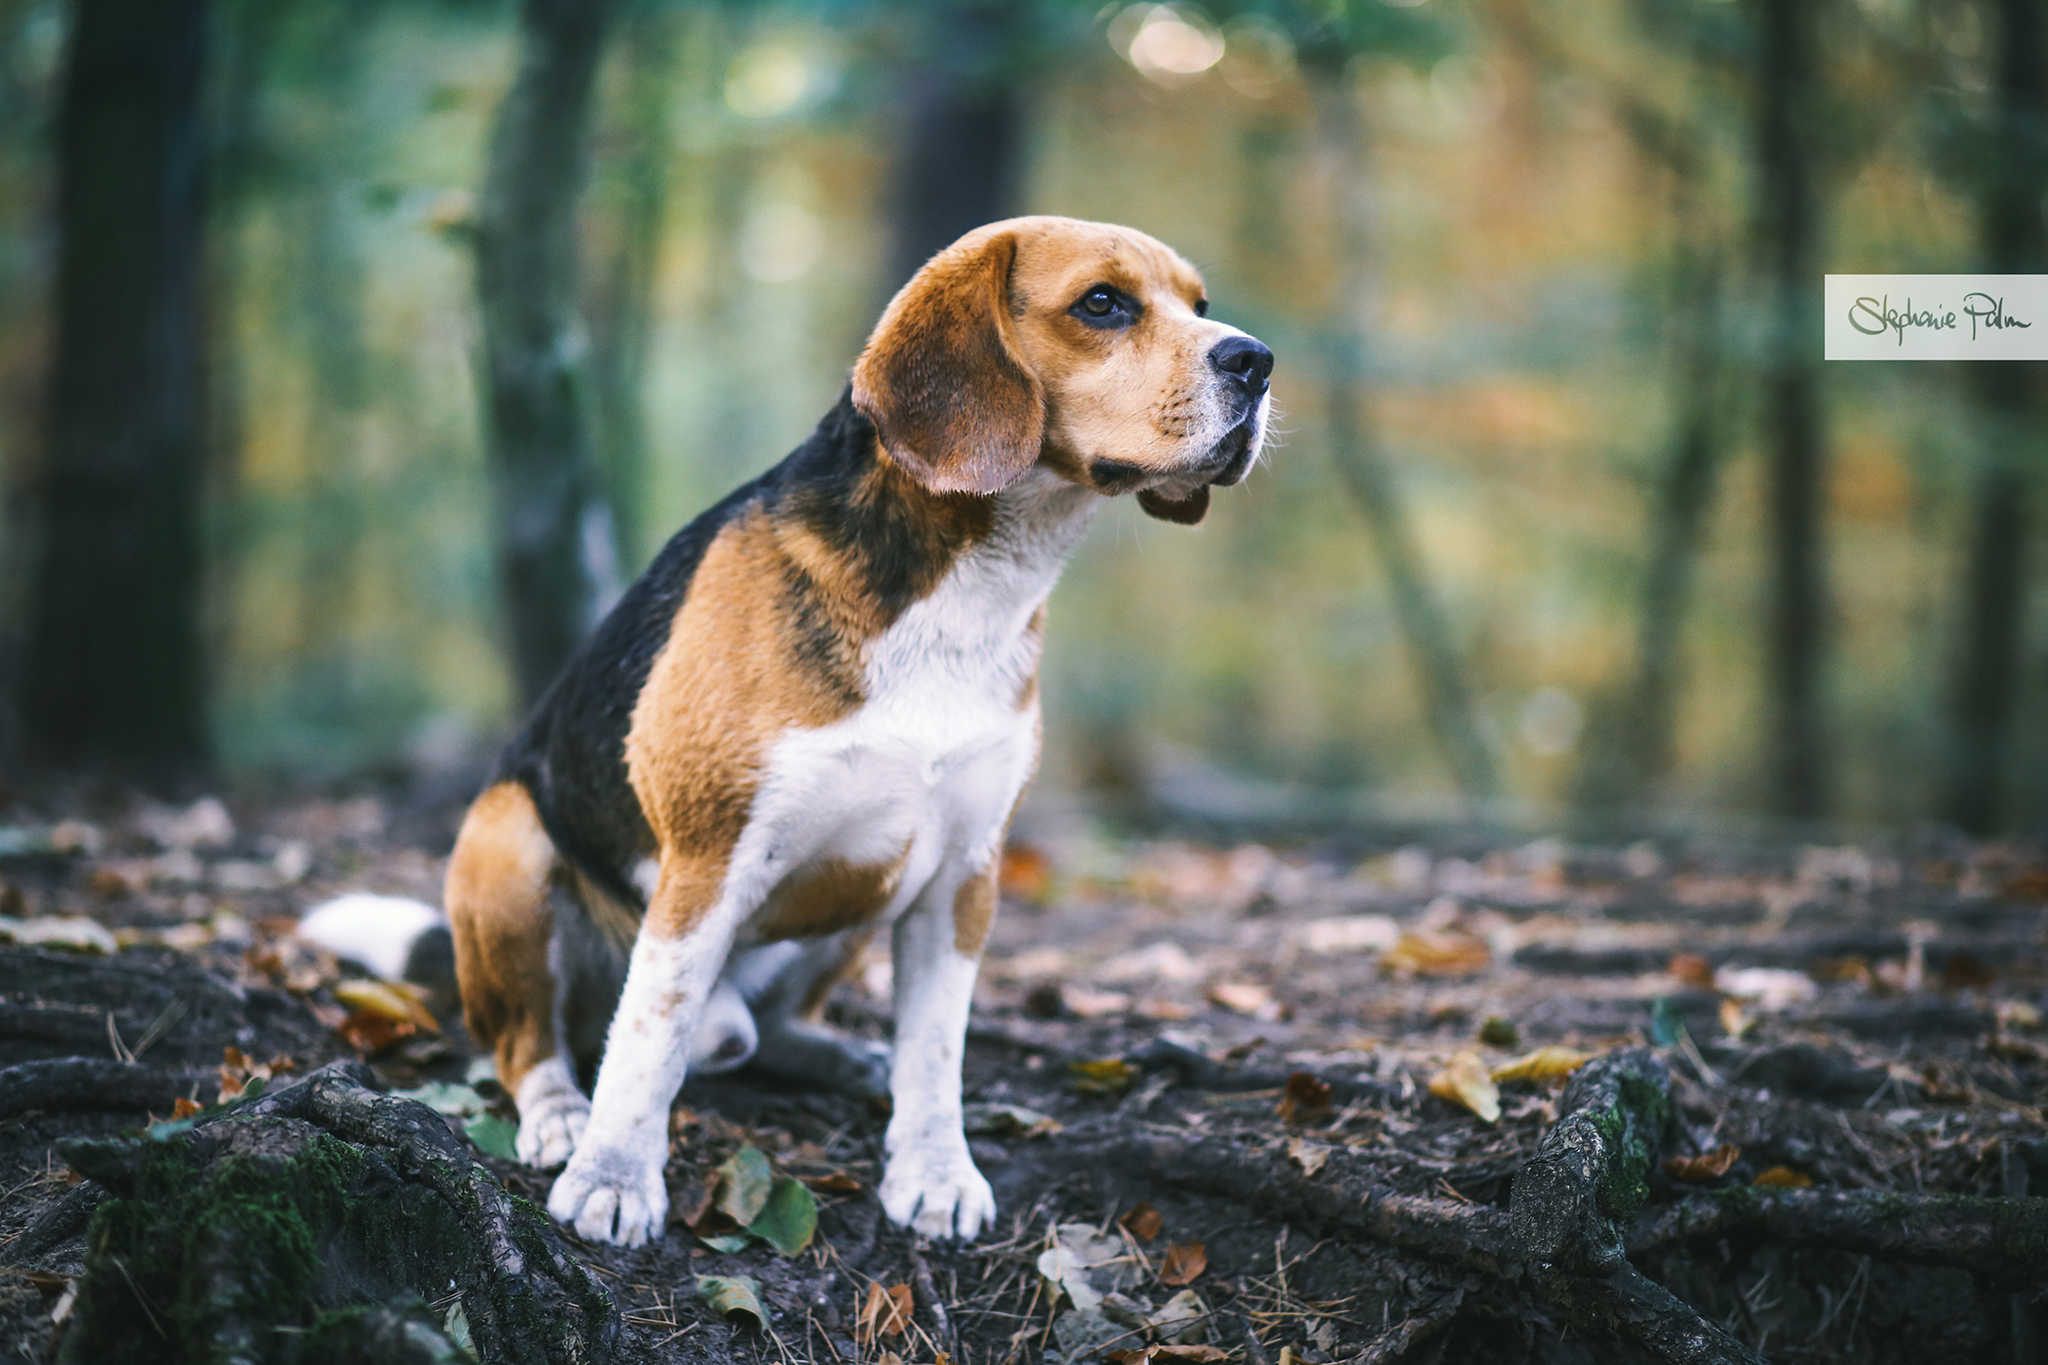 Beagle Paul - Canon EOS 6D + EF 85mm F/1.8